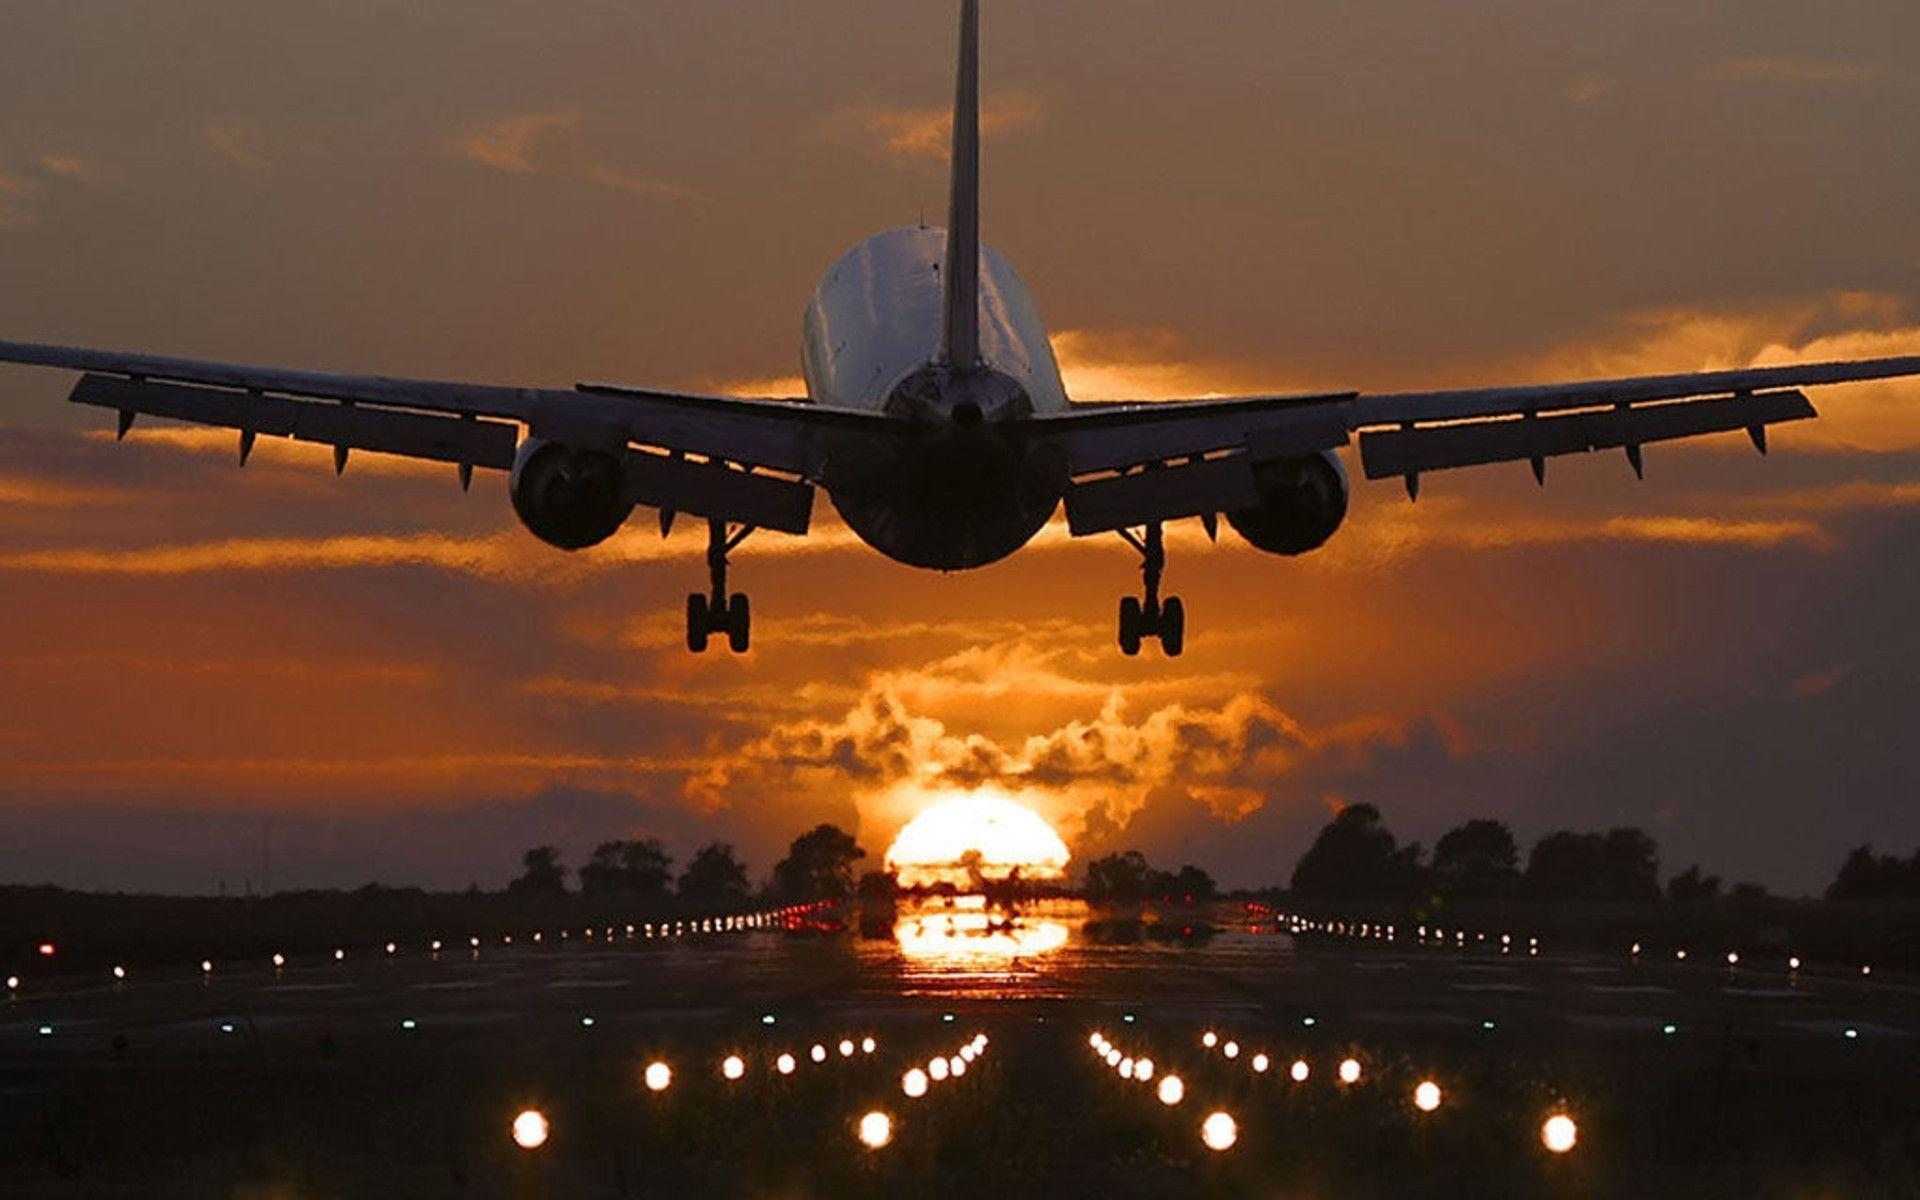 Planes Wallpapers Top Free Planes Backgrounds